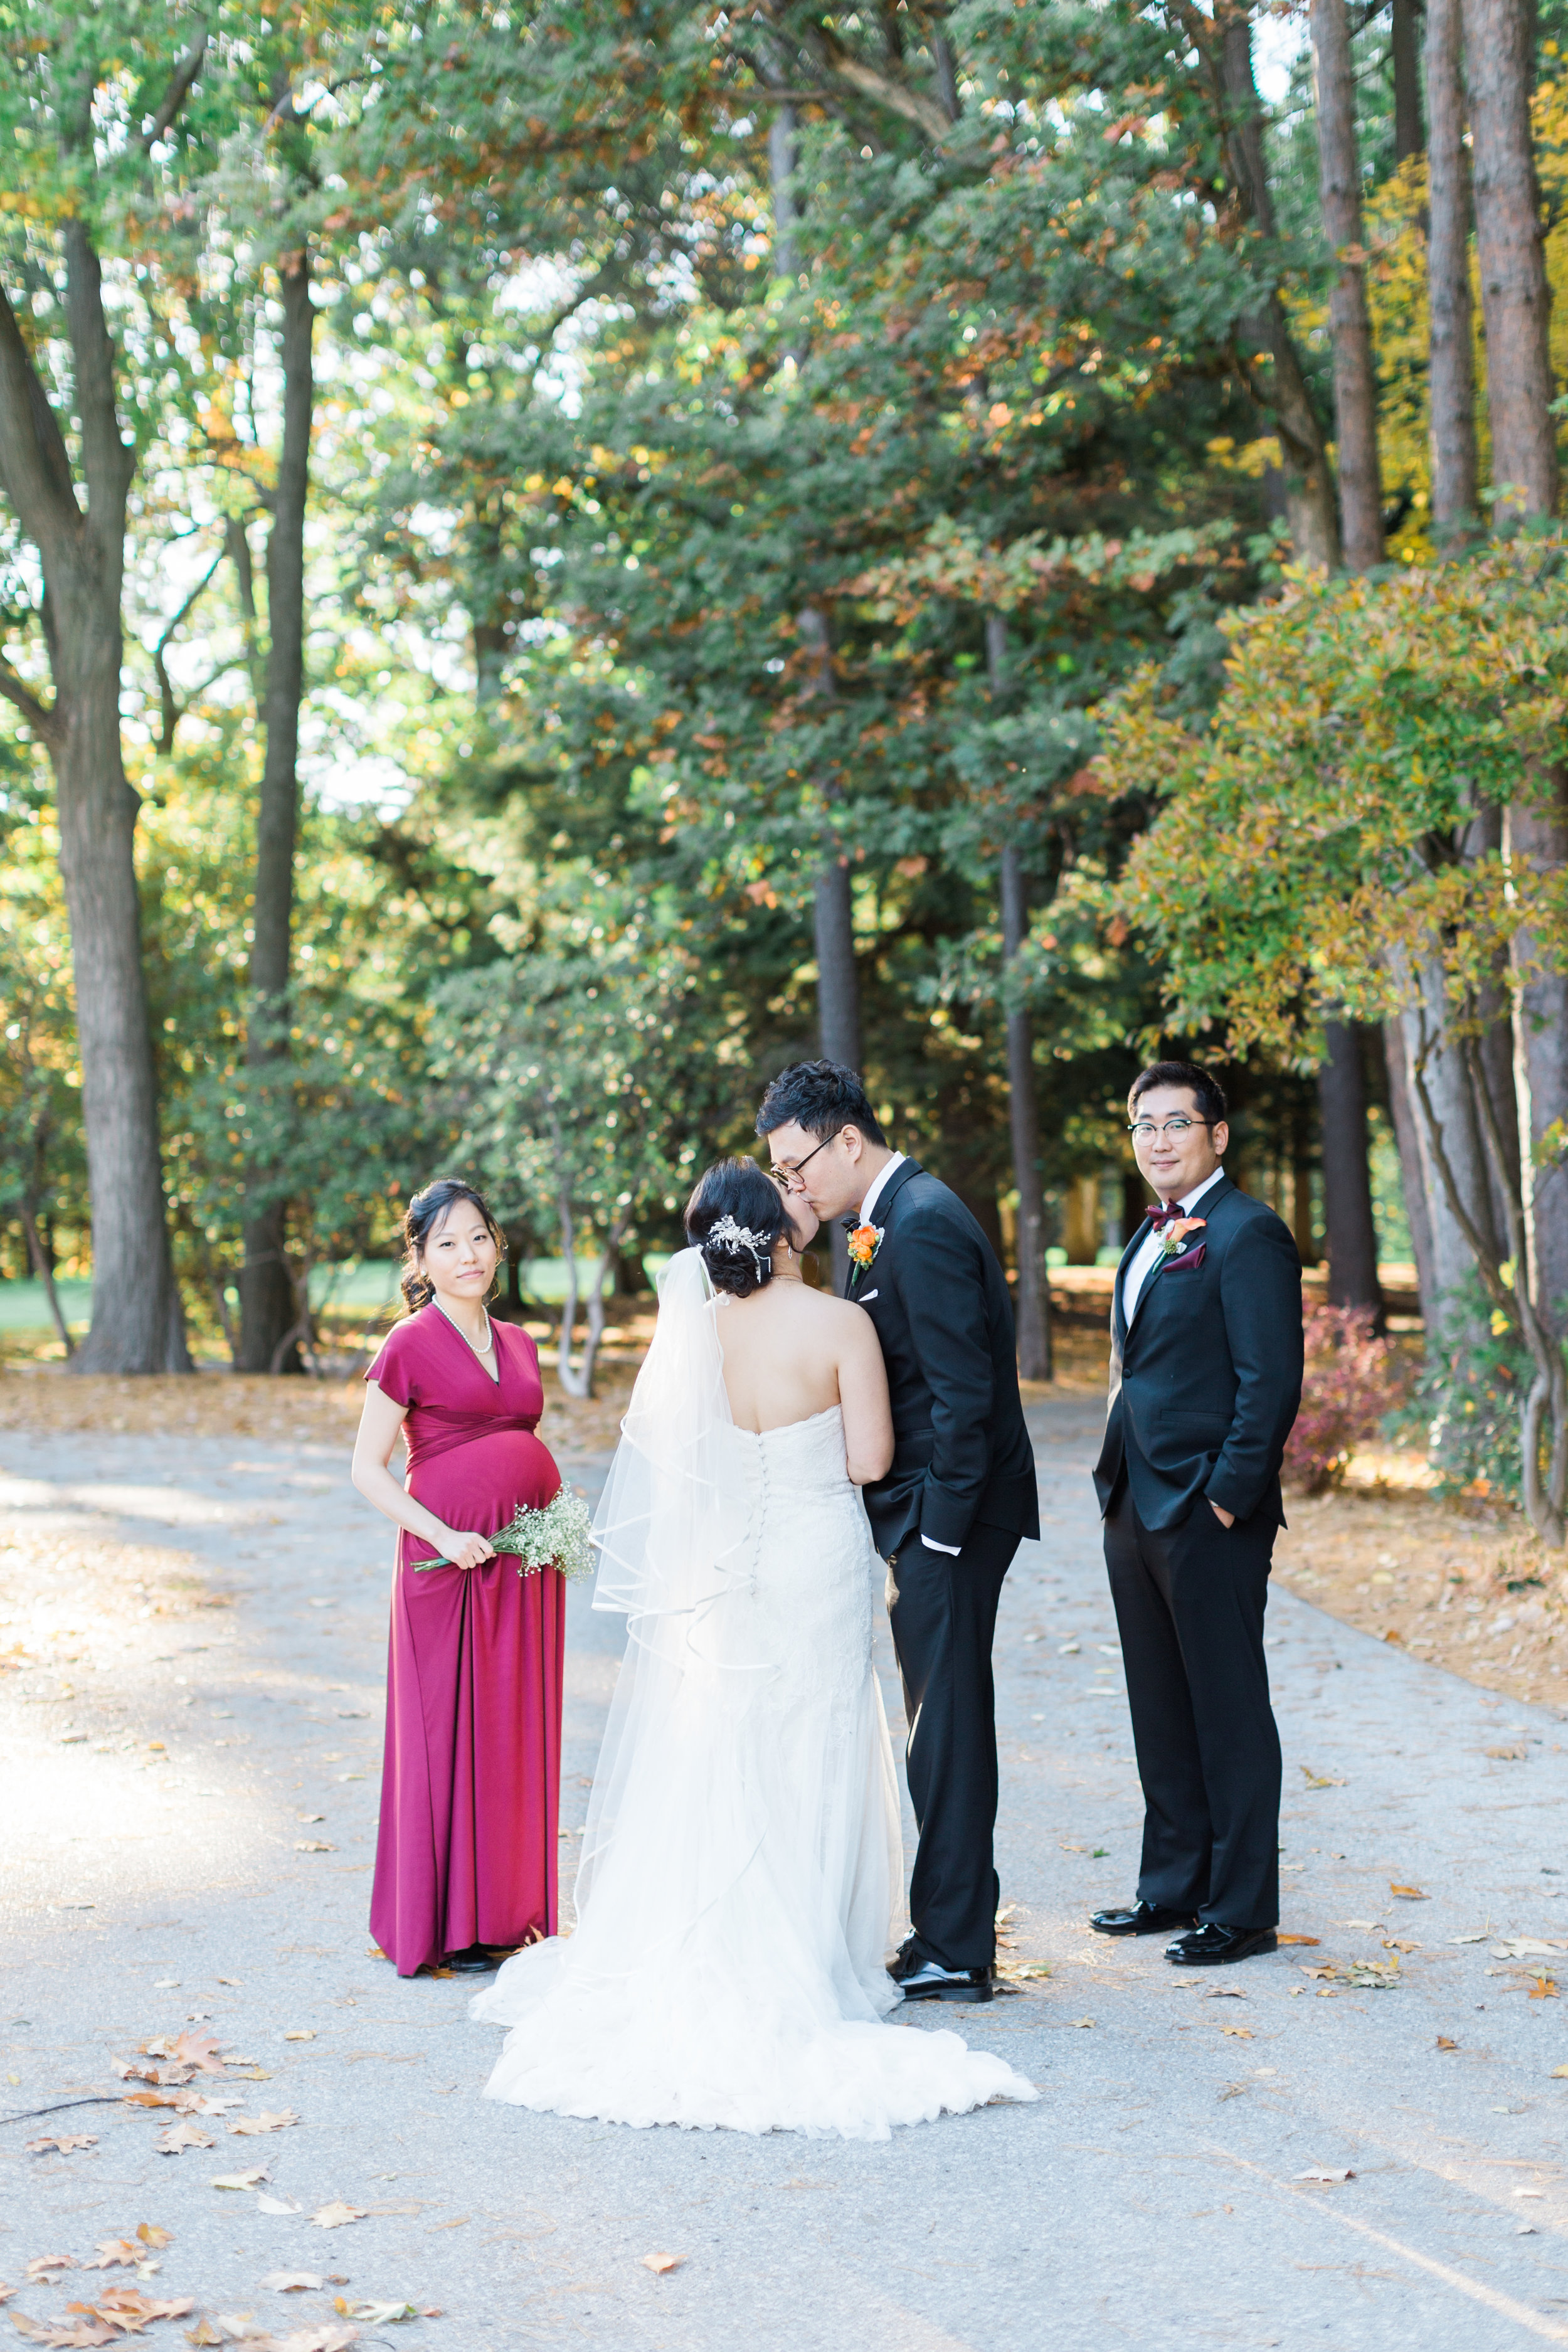 Toronto Fine Art Photographer - Toronto Hunt Club Wedding - Bridal Party Portraits-11.jpg